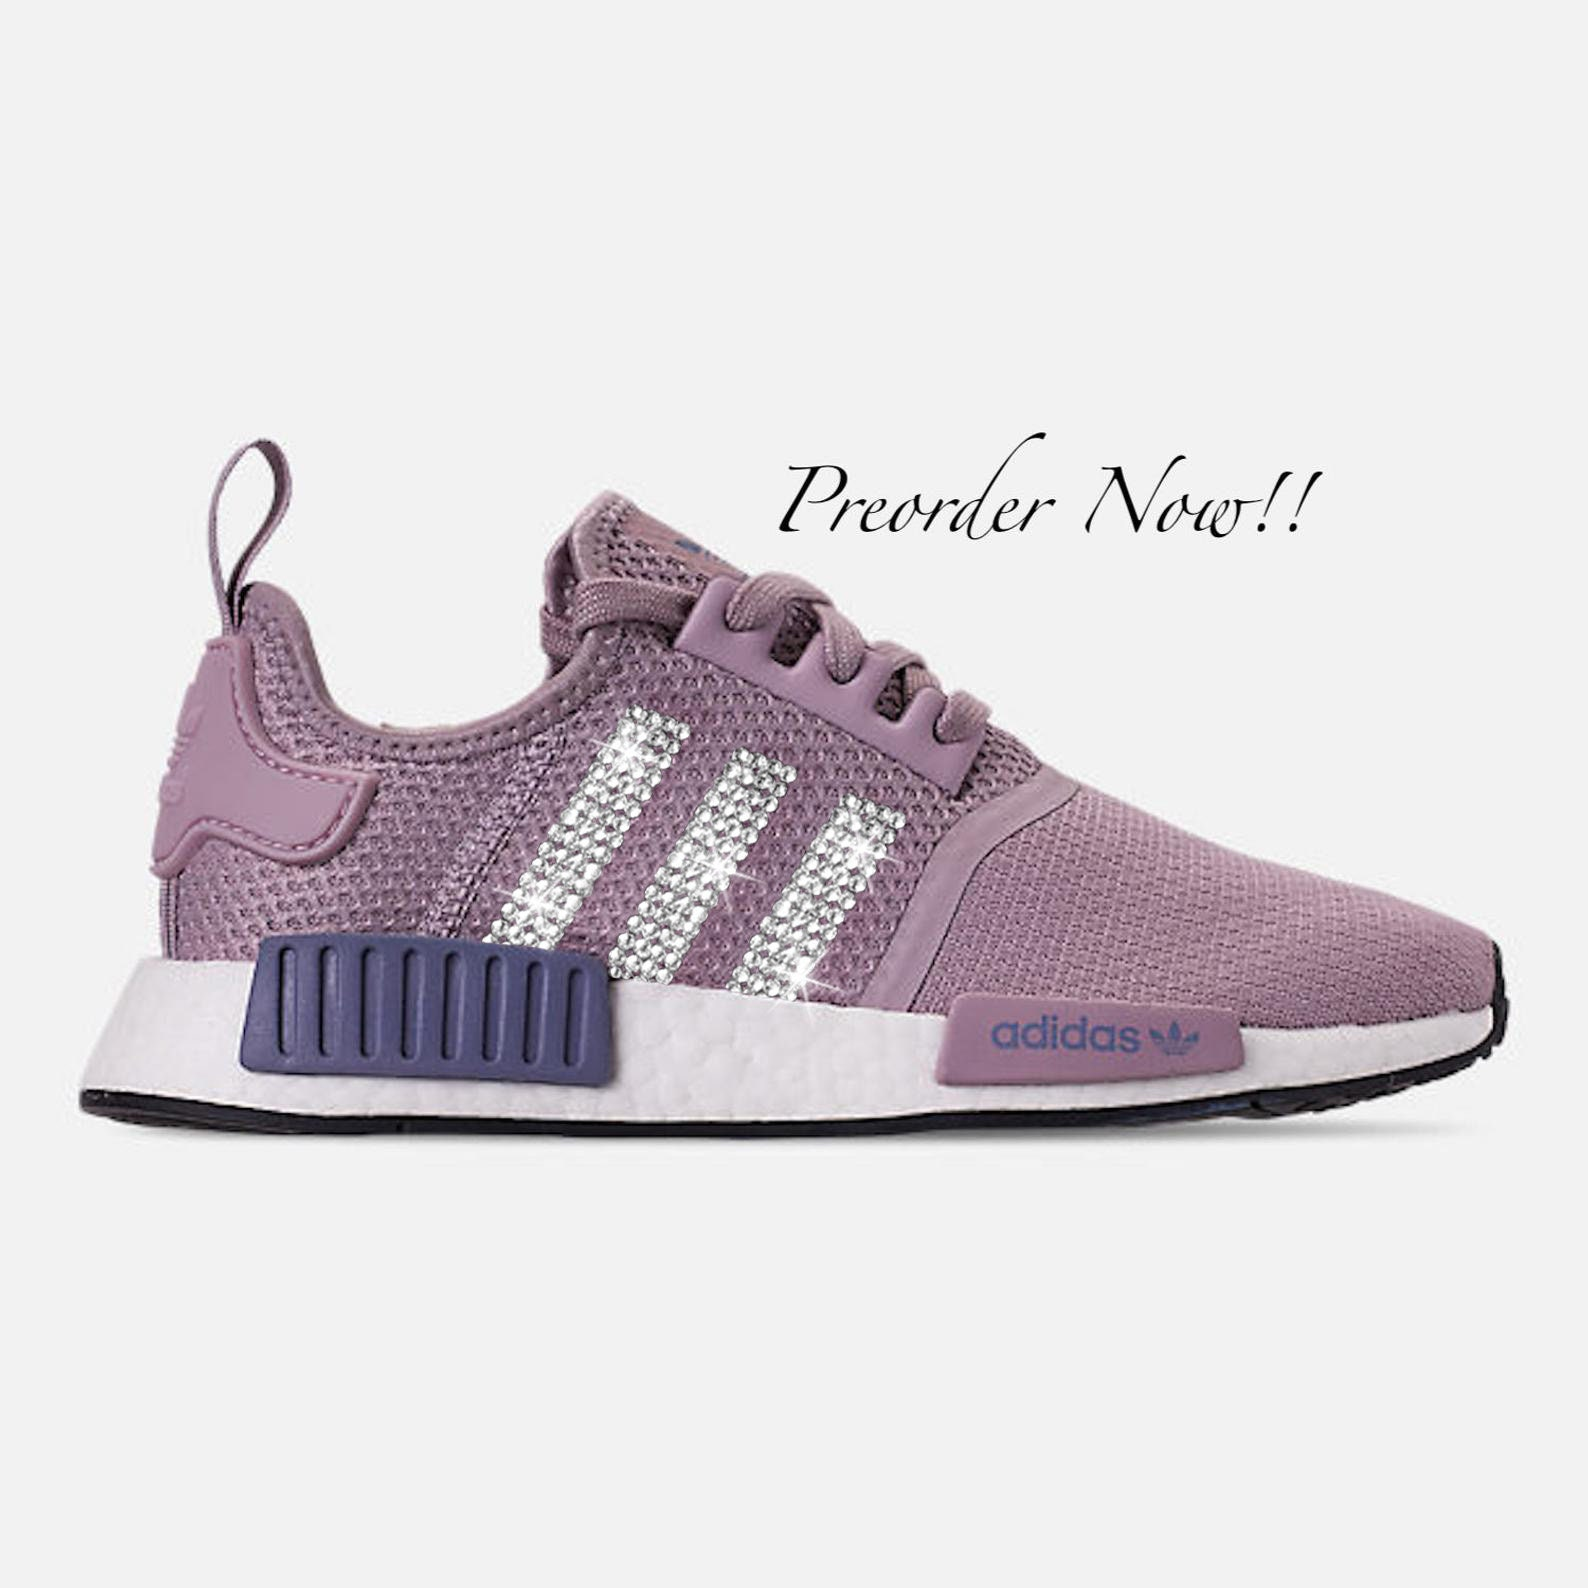 best cheap 9c08a c3cc1 Swarovski Women's Adidas Originals NMD R1 Purple Sneakers Blinged Out With  Authentic Clear Swarovski Crystals Custom Bling Adidas Shoes